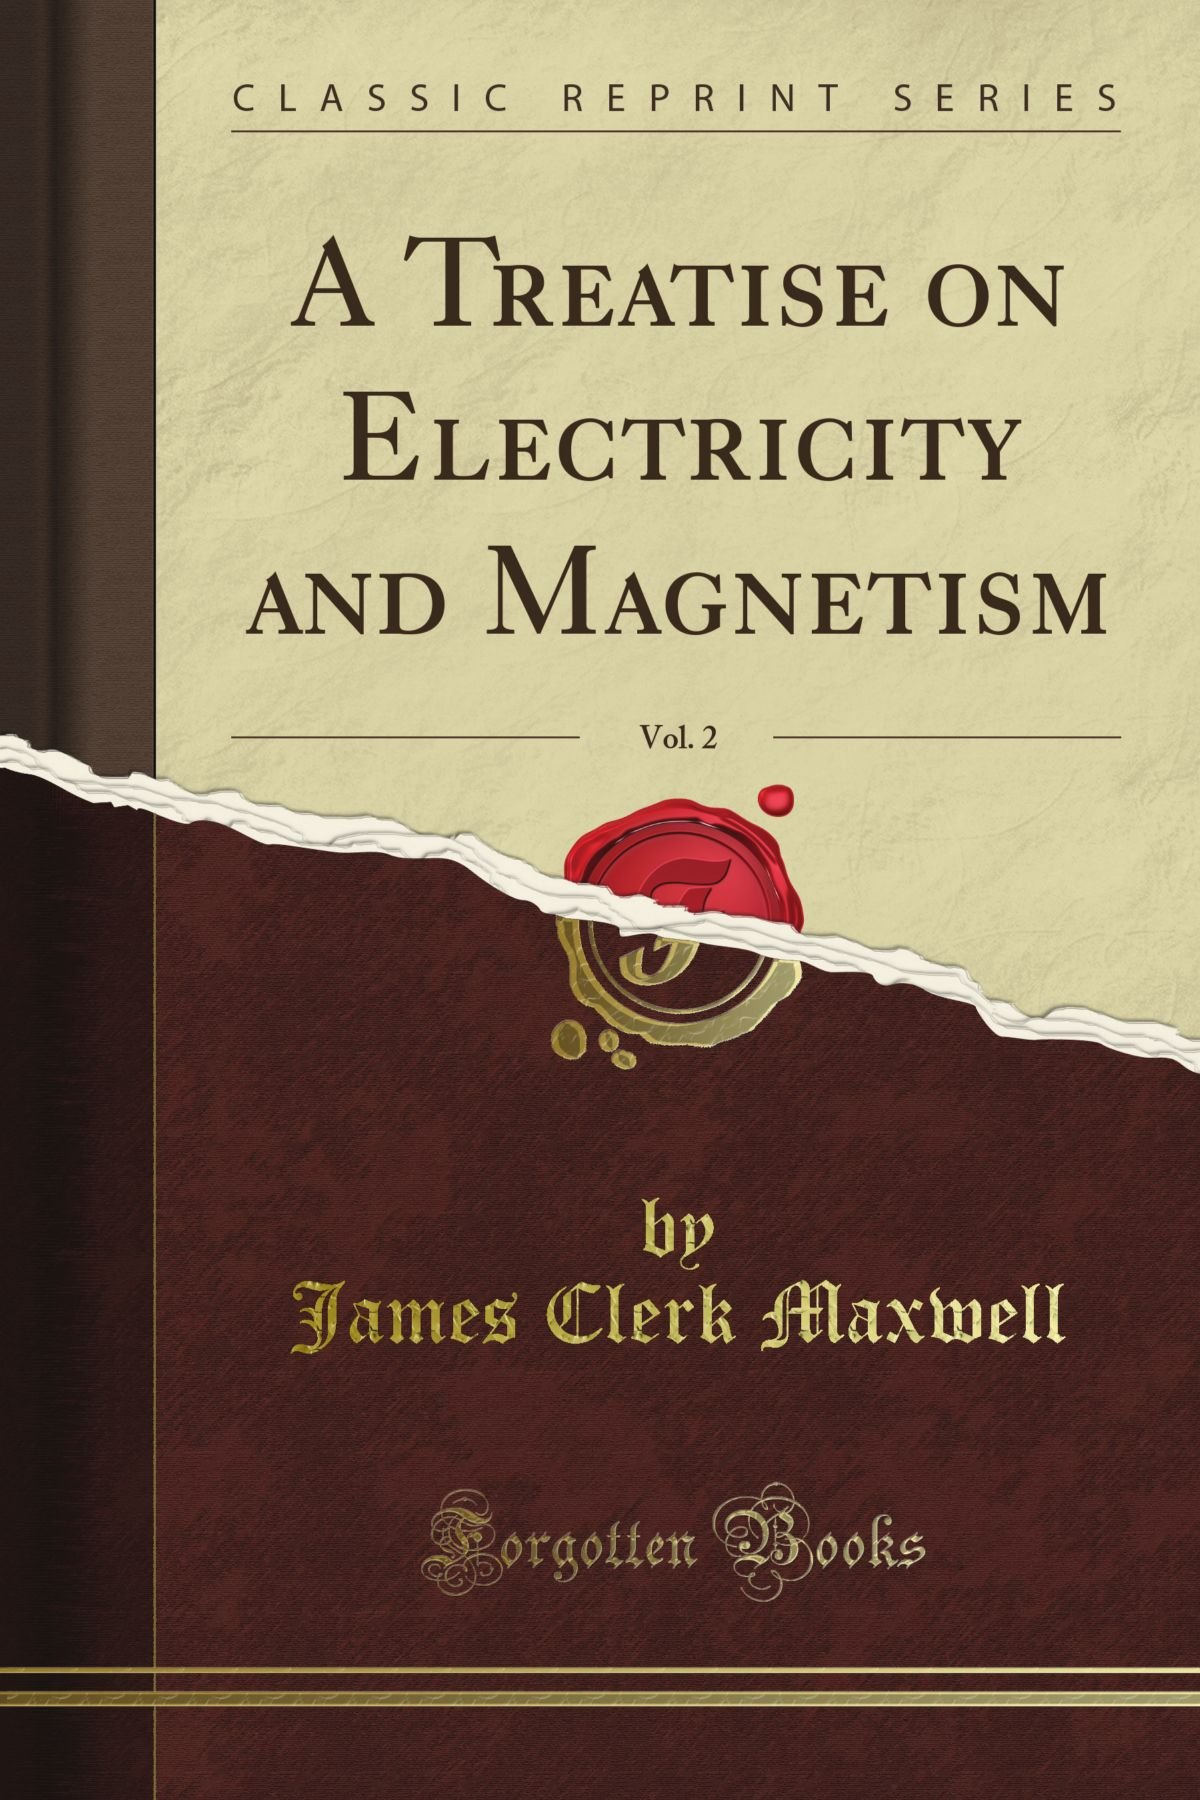 A Treatise on Electricity and Magnetism, Vol. 2 (Classic Reprint)